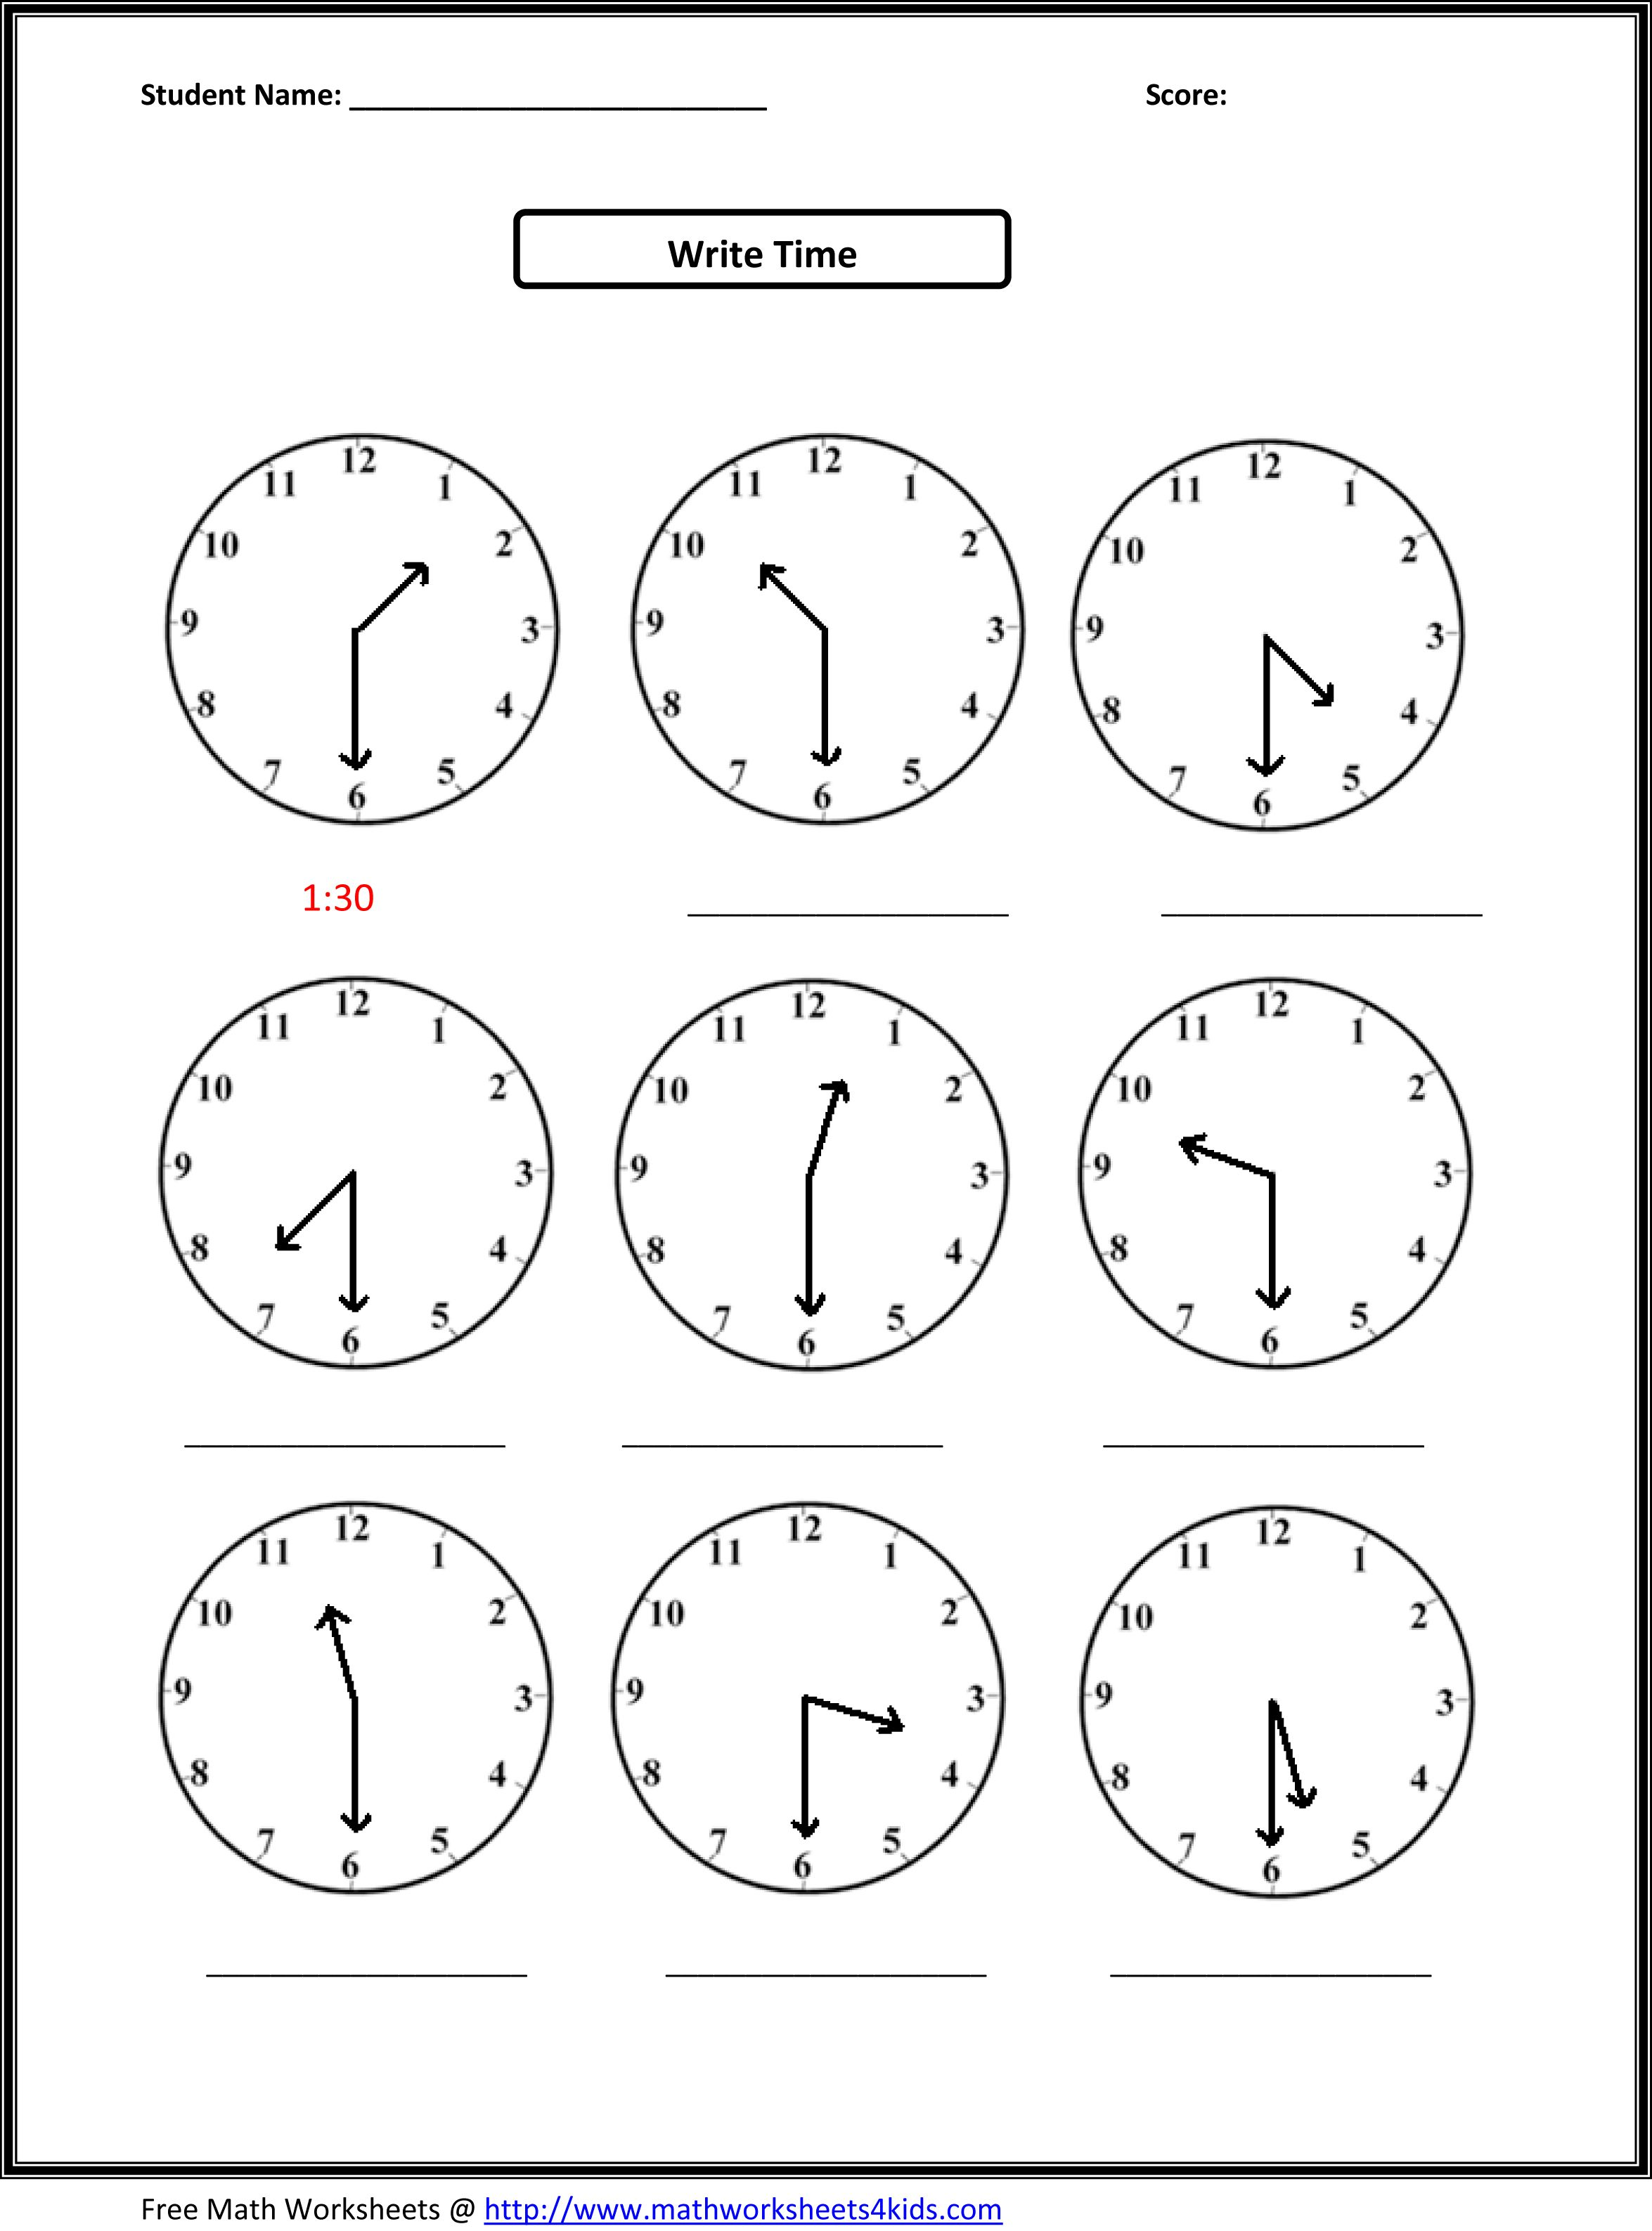 Proatmealus  Picturesque Worksheet On Time For Grade   Reocurent With Excellent Free Printable Telling Time Worksheets Nd Grade  Reocurent With Cute Worksheet Functions Also Digraph Sh Worksheets In Addition Math Pdf Worksheet And Divisibility Test Worksheet As Well As Algebra Worksheets For Th Grade Additionally Multiplication With Arrays Worksheet Rd Grade From Reocurentcom With Proatmealus  Excellent Worksheet On Time For Grade   Reocurent With Cute Free Printable Telling Time Worksheets Nd Grade  Reocurent And Picturesque Worksheet Functions Also Digraph Sh Worksheets In Addition Math Pdf Worksheet From Reocurentcom